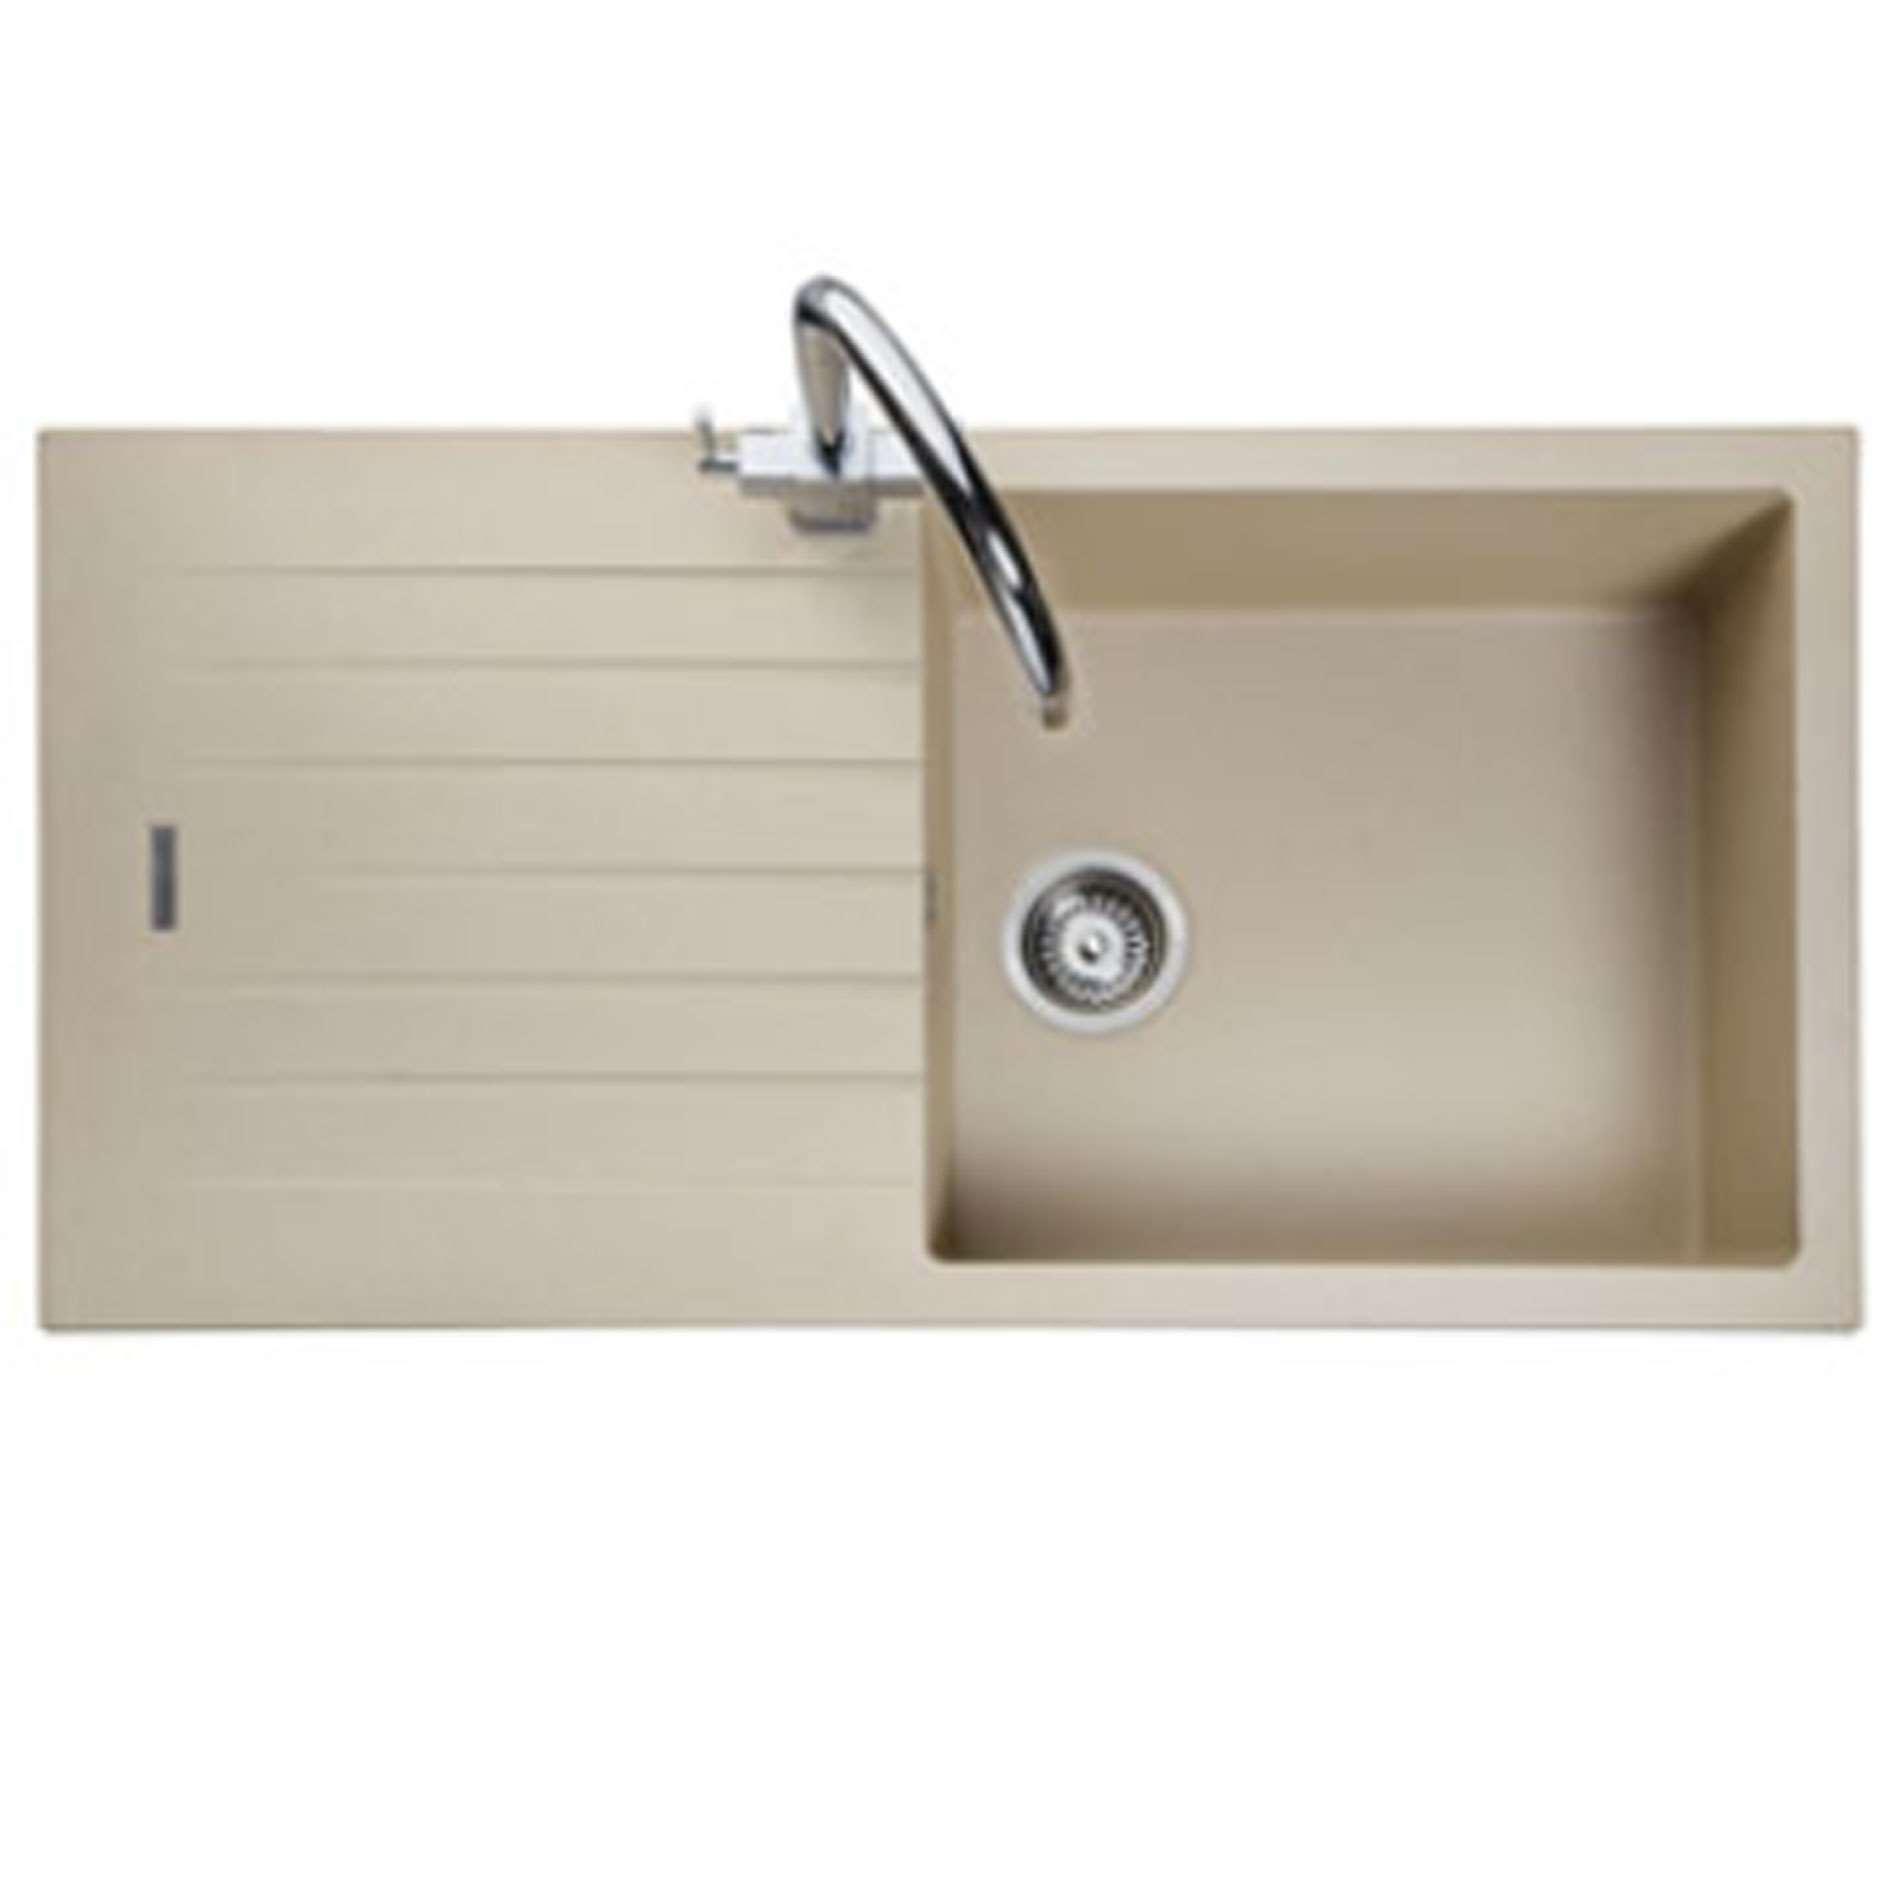 Stone Kitchen Sinks Uk : ... : Andesite AND1051 Stone Igneous Sink - Kitchen Sinks & Taps